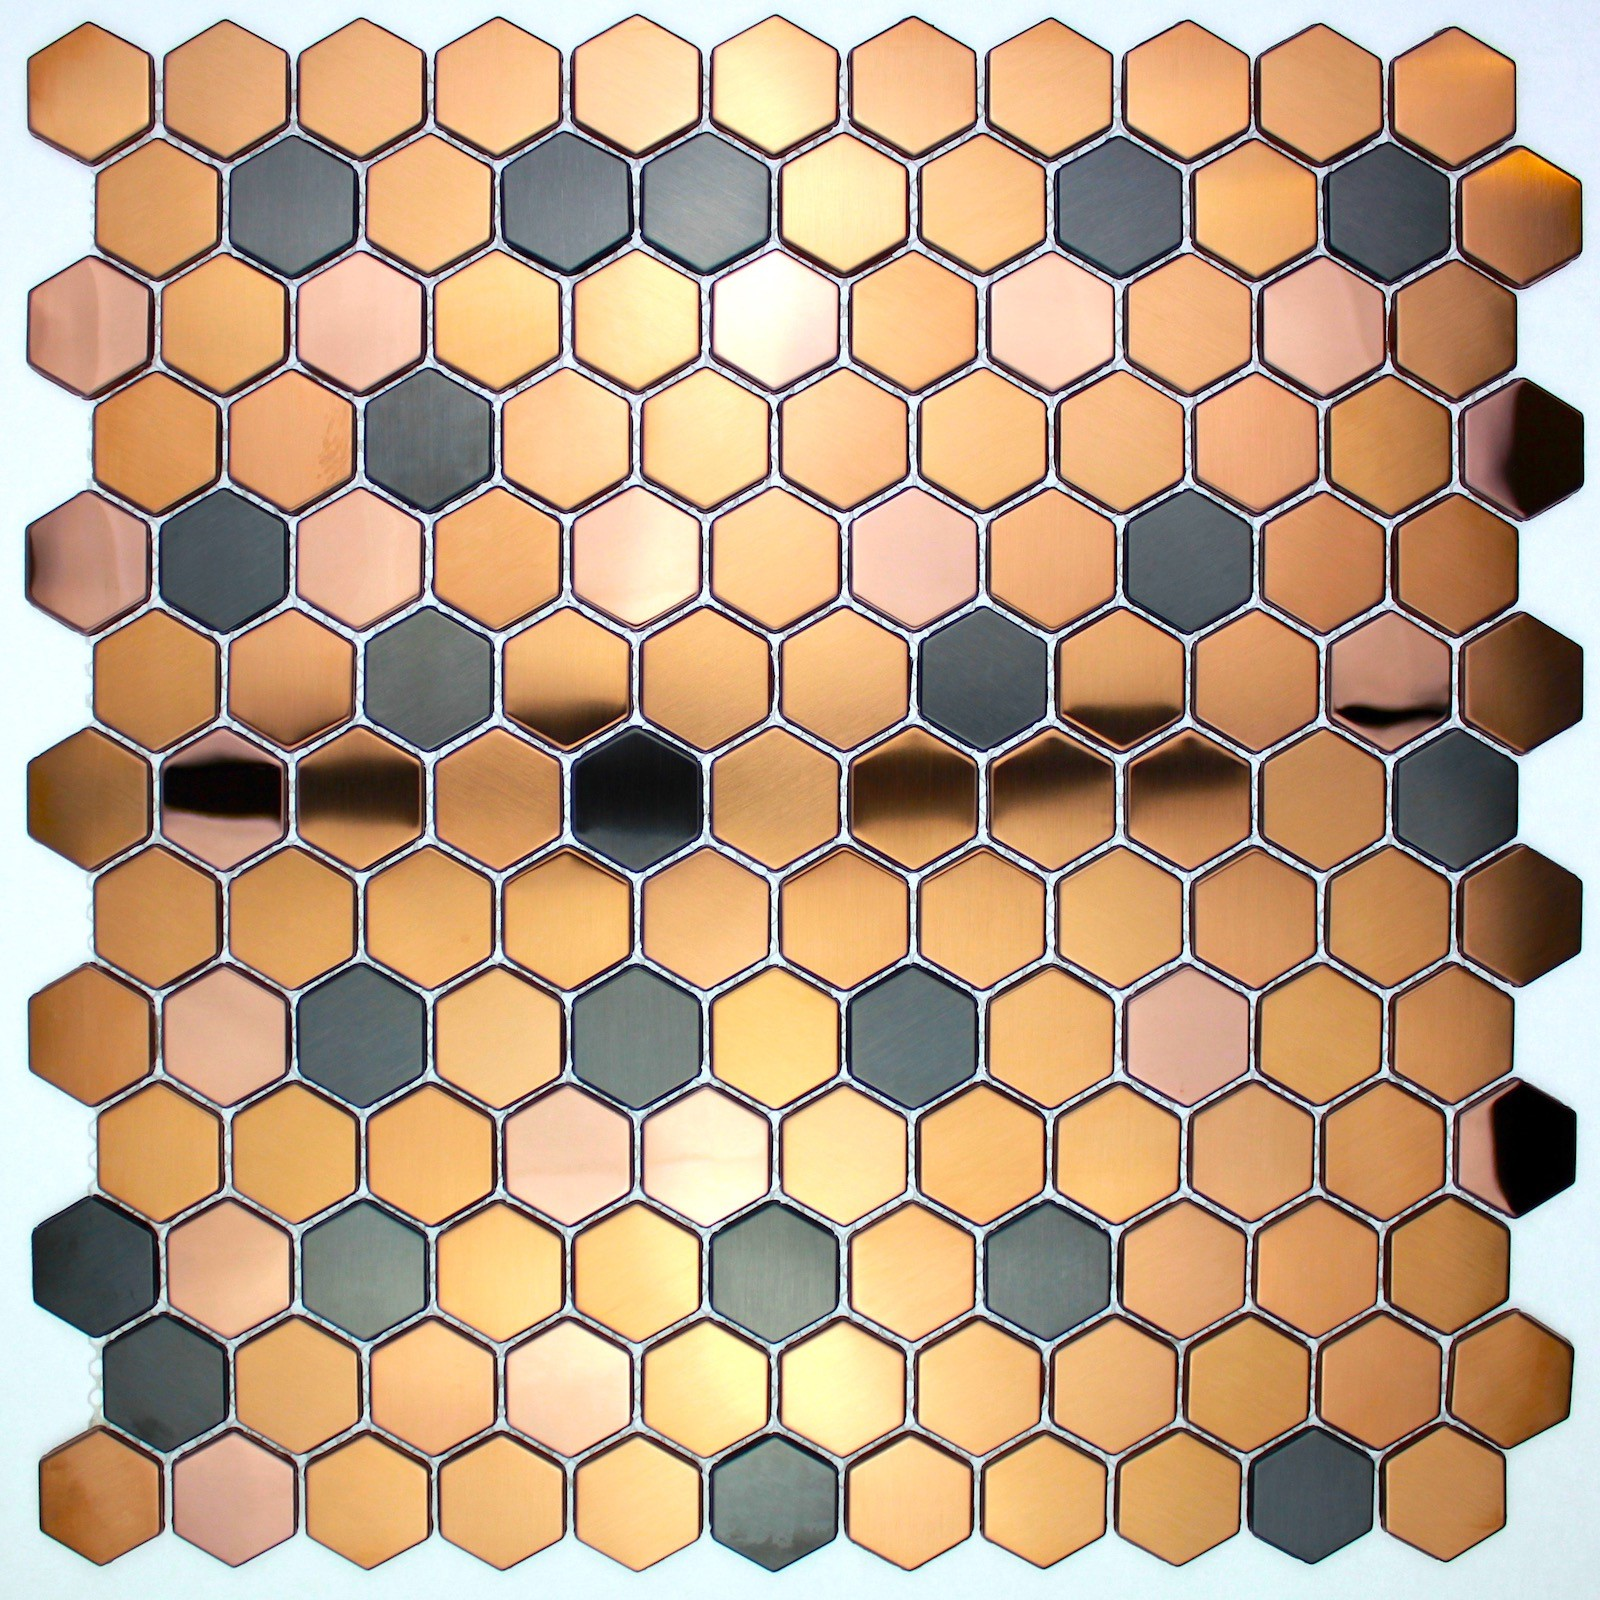 - Stainless Steel Copper Backsplash Kitchen Mosaic Shower In-duncan